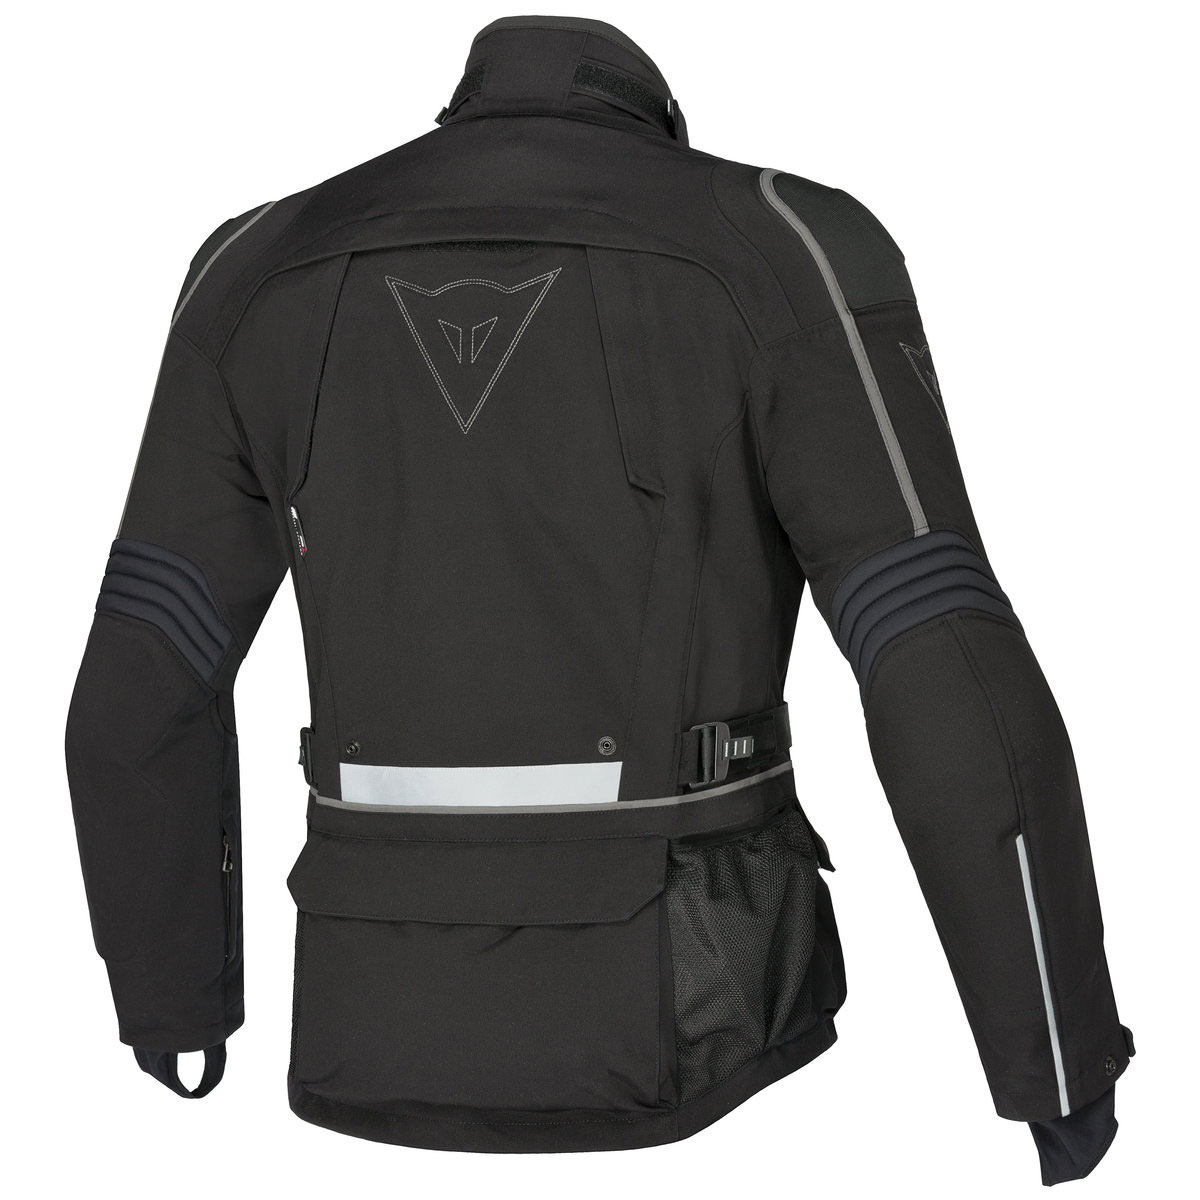 D-dry dainese 1654555-631-2